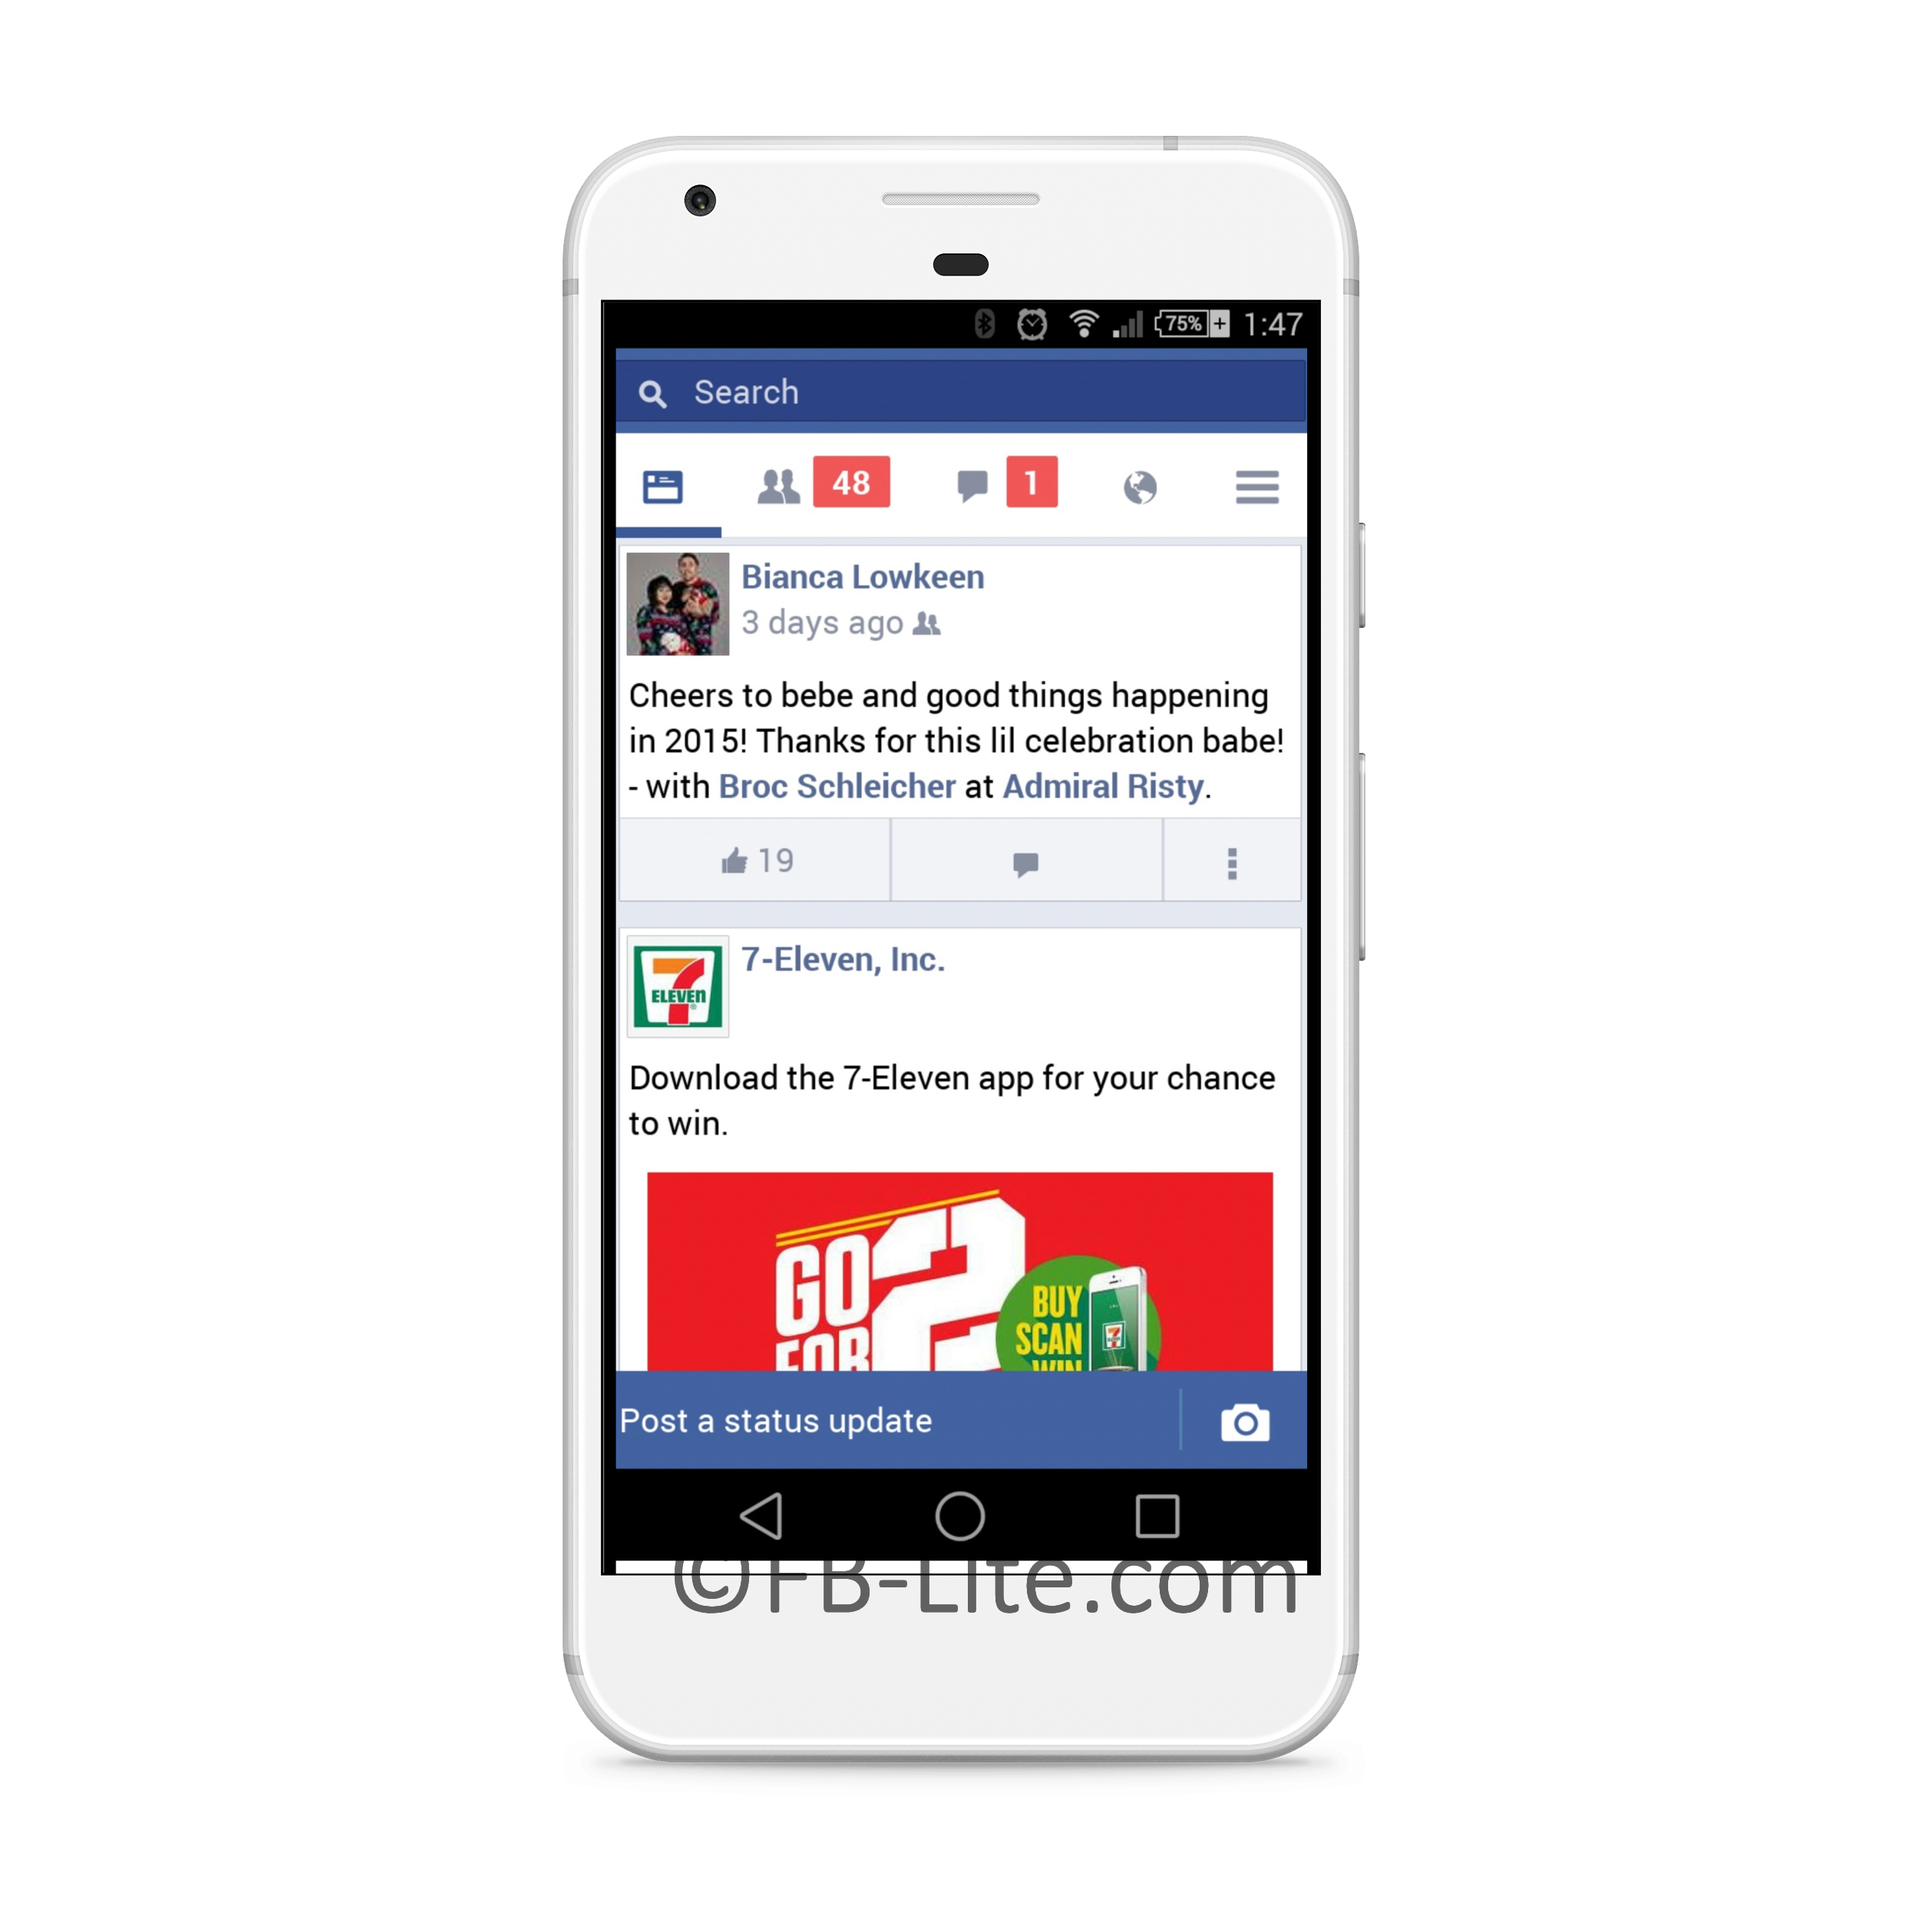 Facebook Lite Download For Android Amp Ios Iphone Amp Ipad 4 9 98 94 113 Votes What Is Facebook Lite Fb Lite The Facebook Lite Version Of Facebook Mo